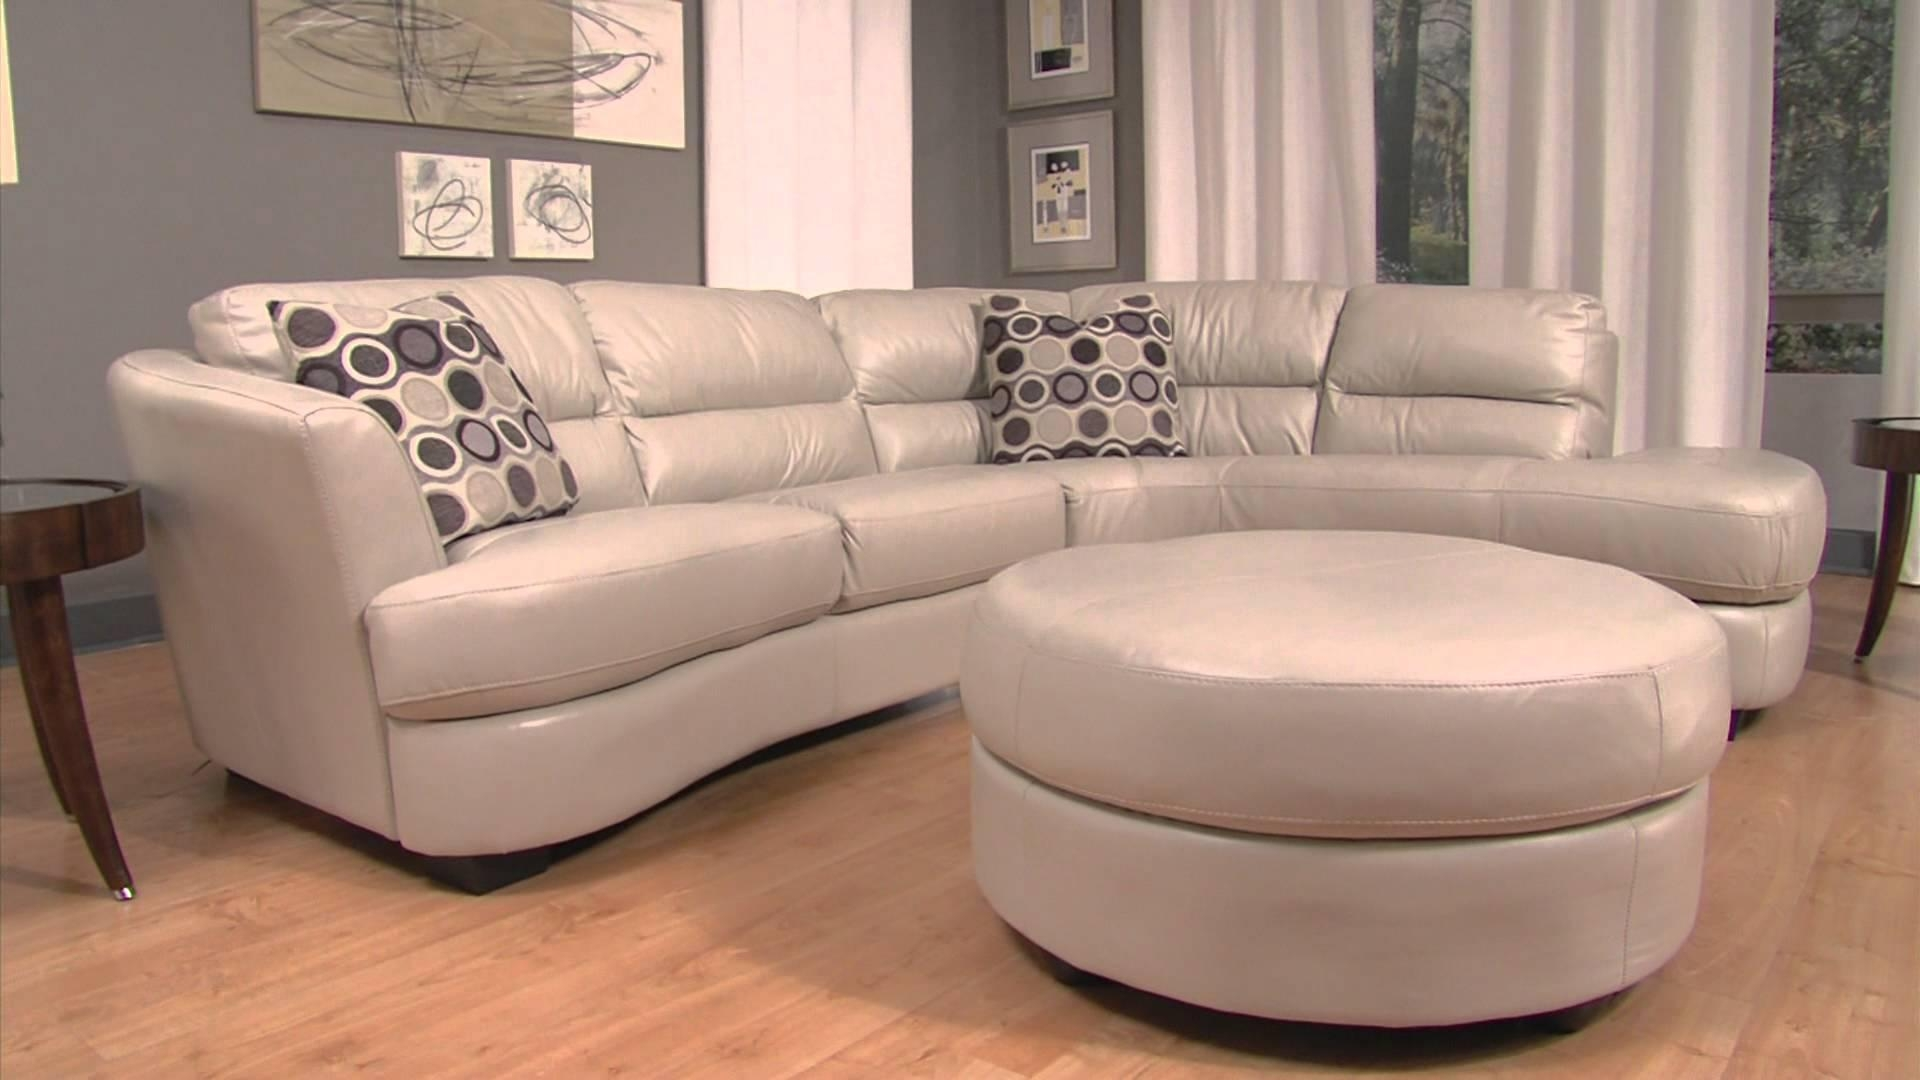 Berkline Andlynn Sofa Set Costco 3 Berkline Andlynn Sofa Set With Berkline Sofas (Image 1 of 20)